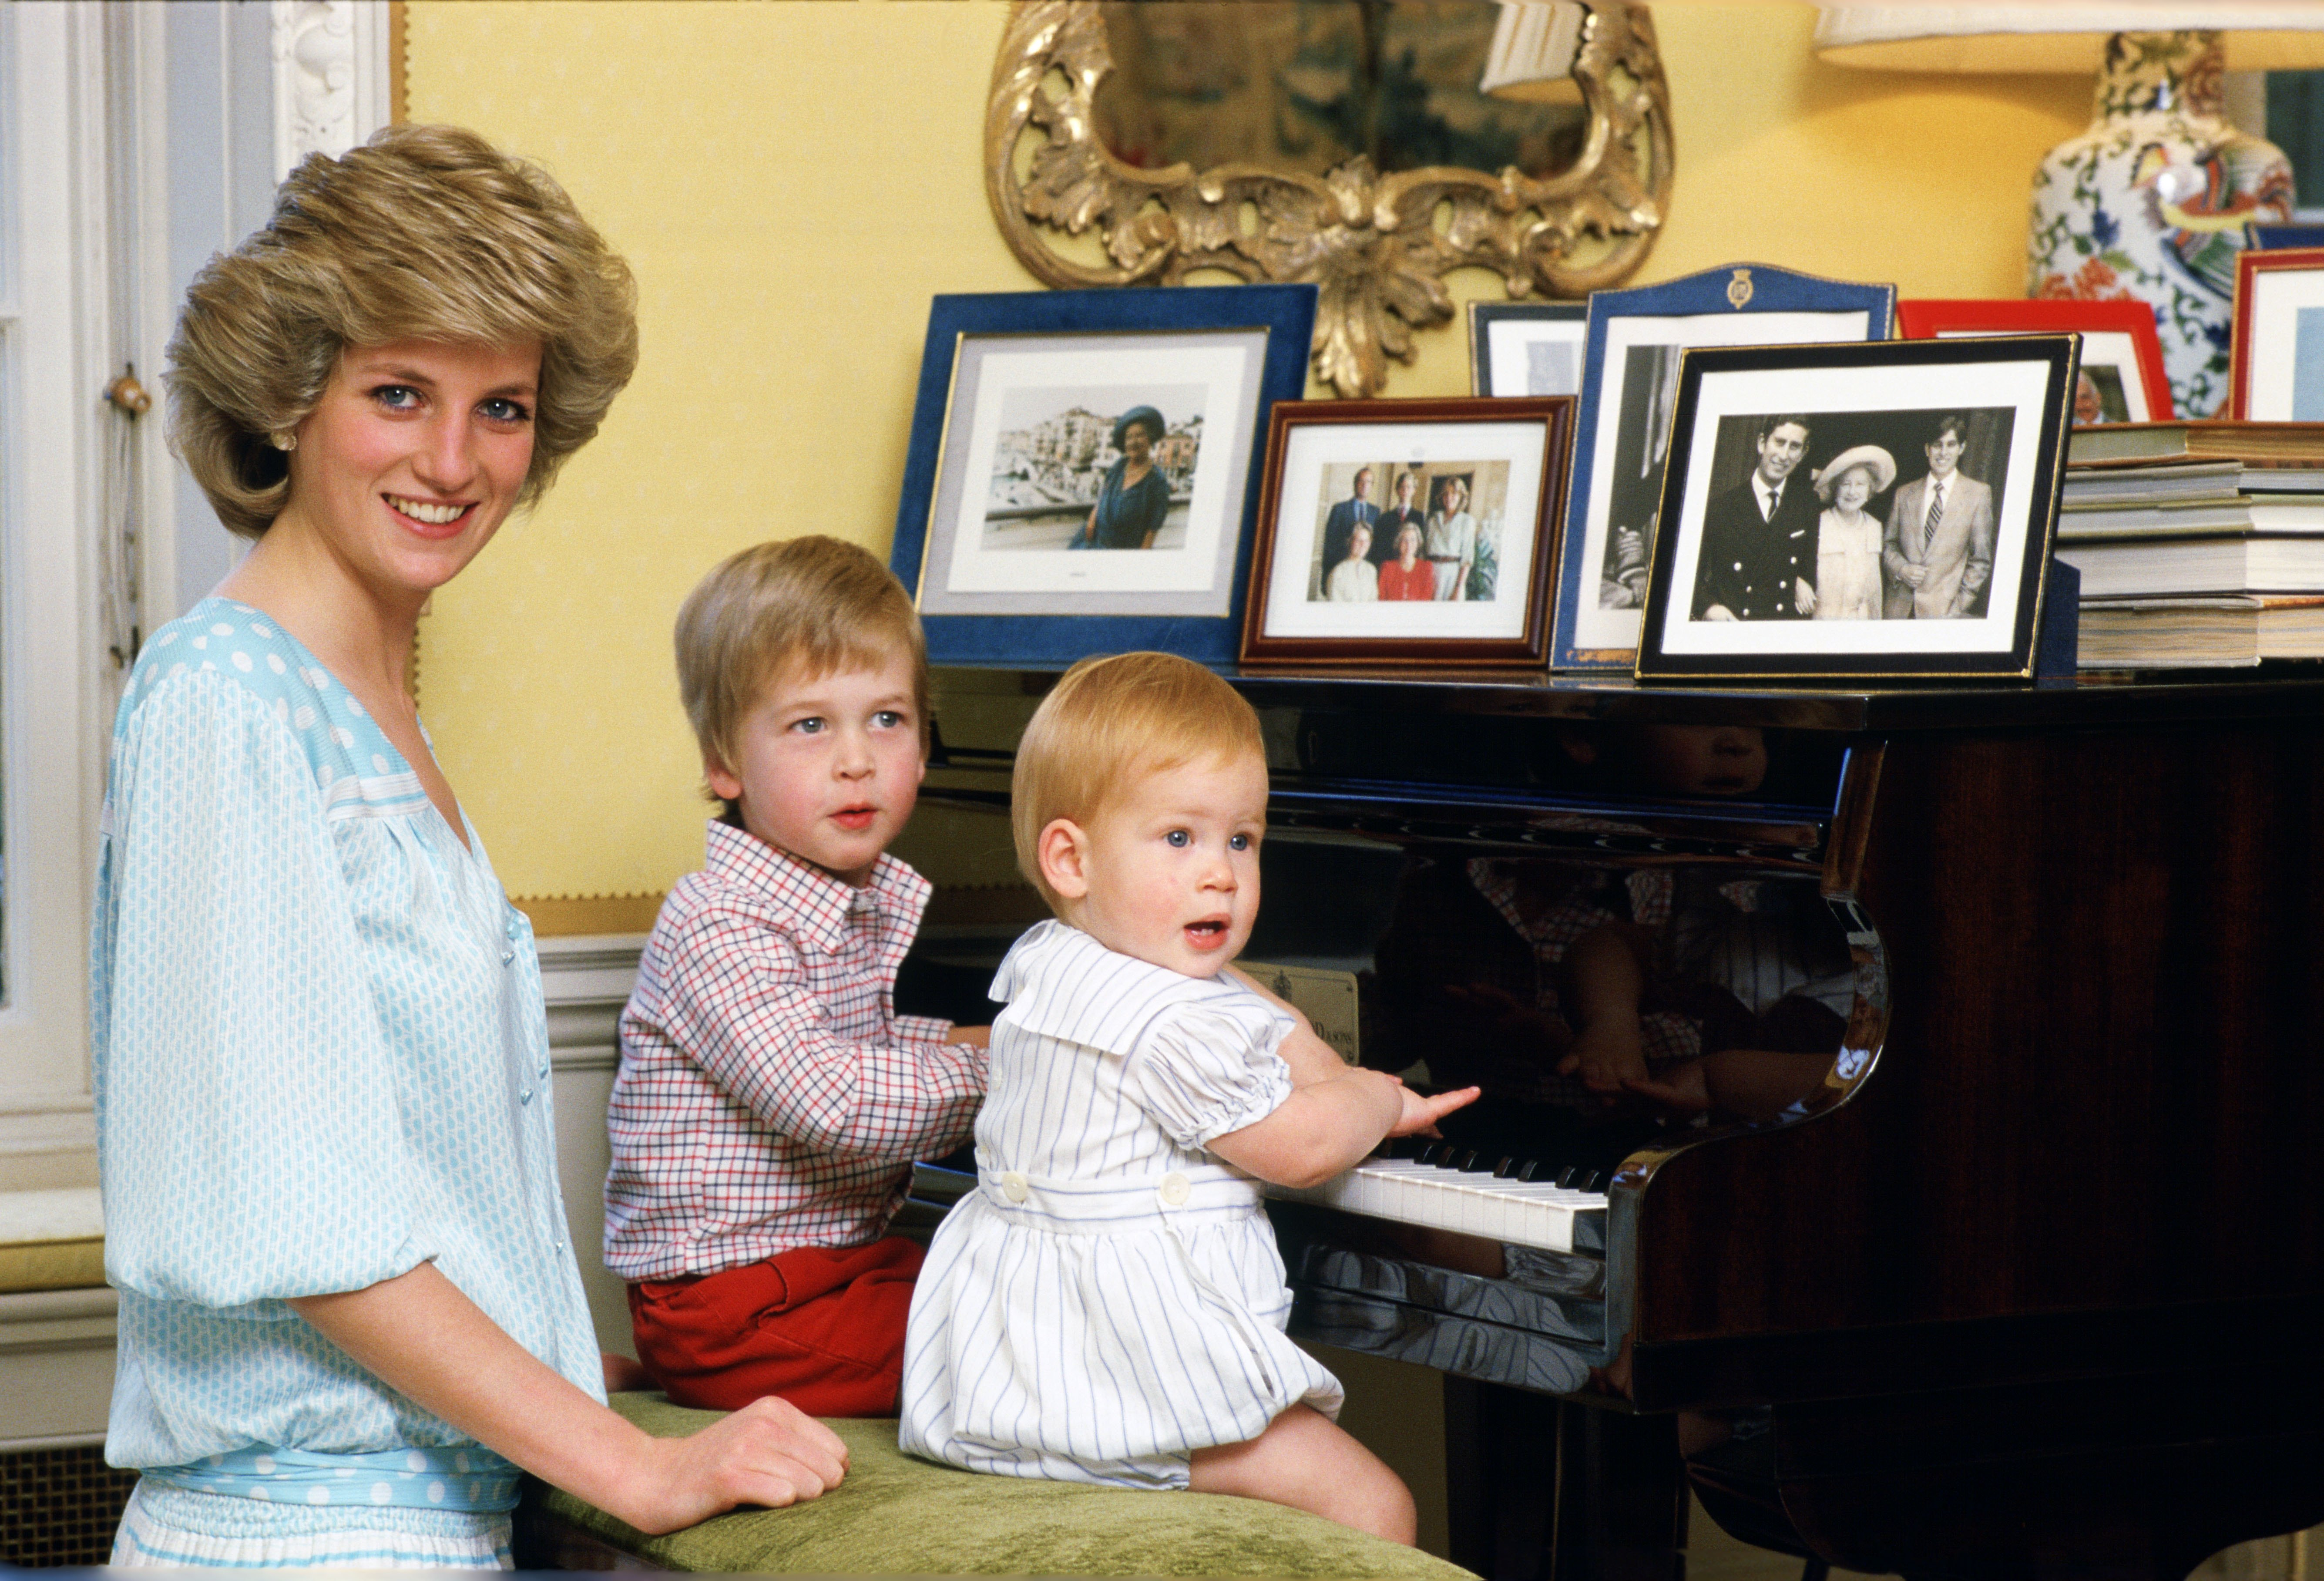 Diana, Princess of Wales with her sons, Prince William and Prince Harry, at the piano in Kensington Palace.